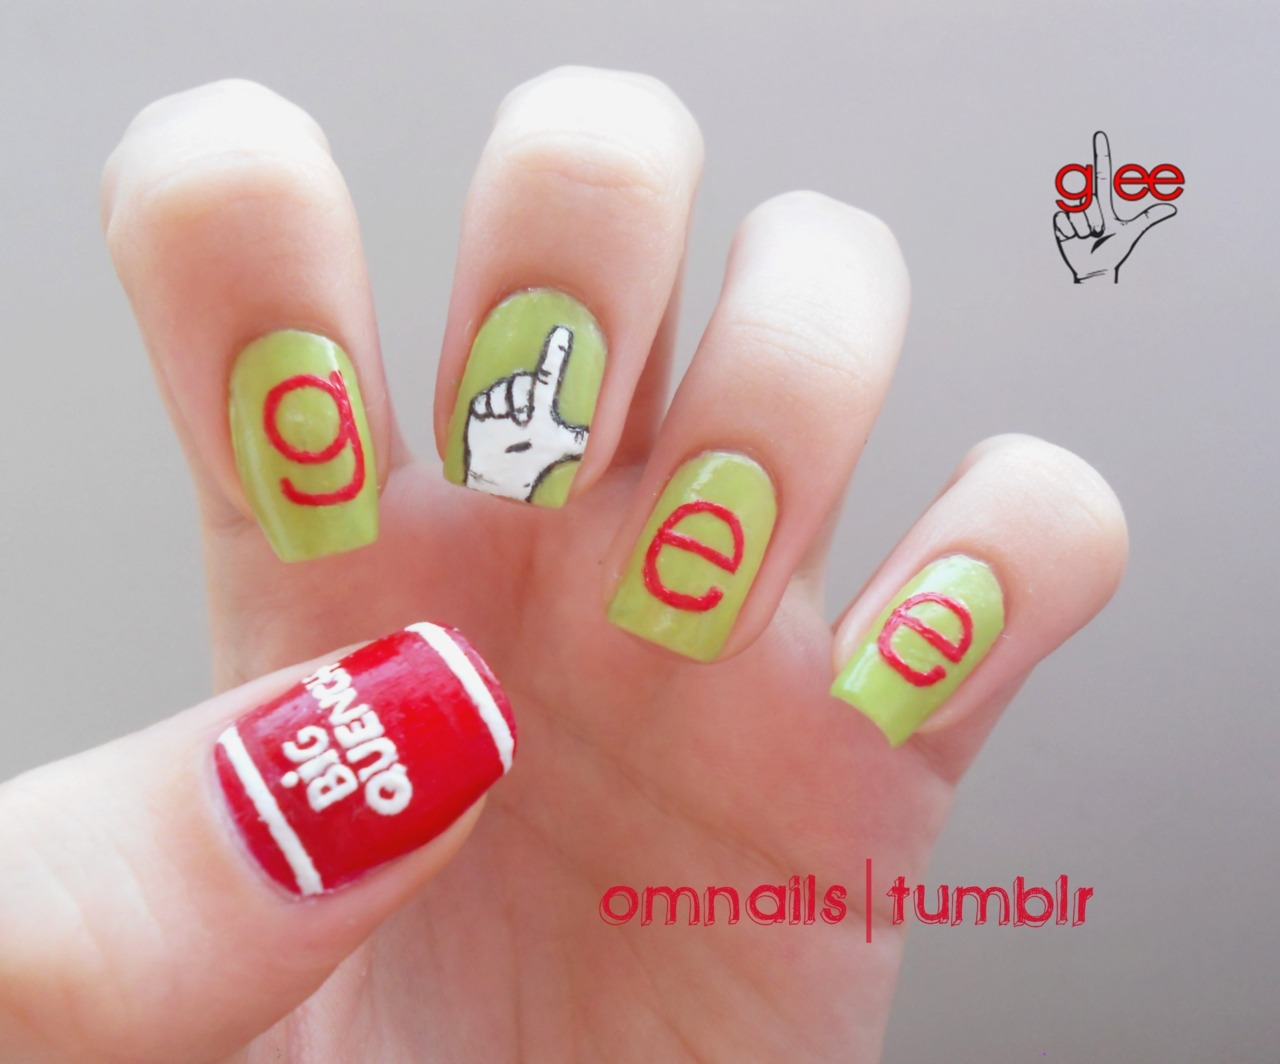 omnails:  Glee nail art - part 2 | I can't wait another minute for season 3! Hope my nail art can show you guys how much I love Glee :) 09/20, I keep waiting! xoxo part 1 - cheerios